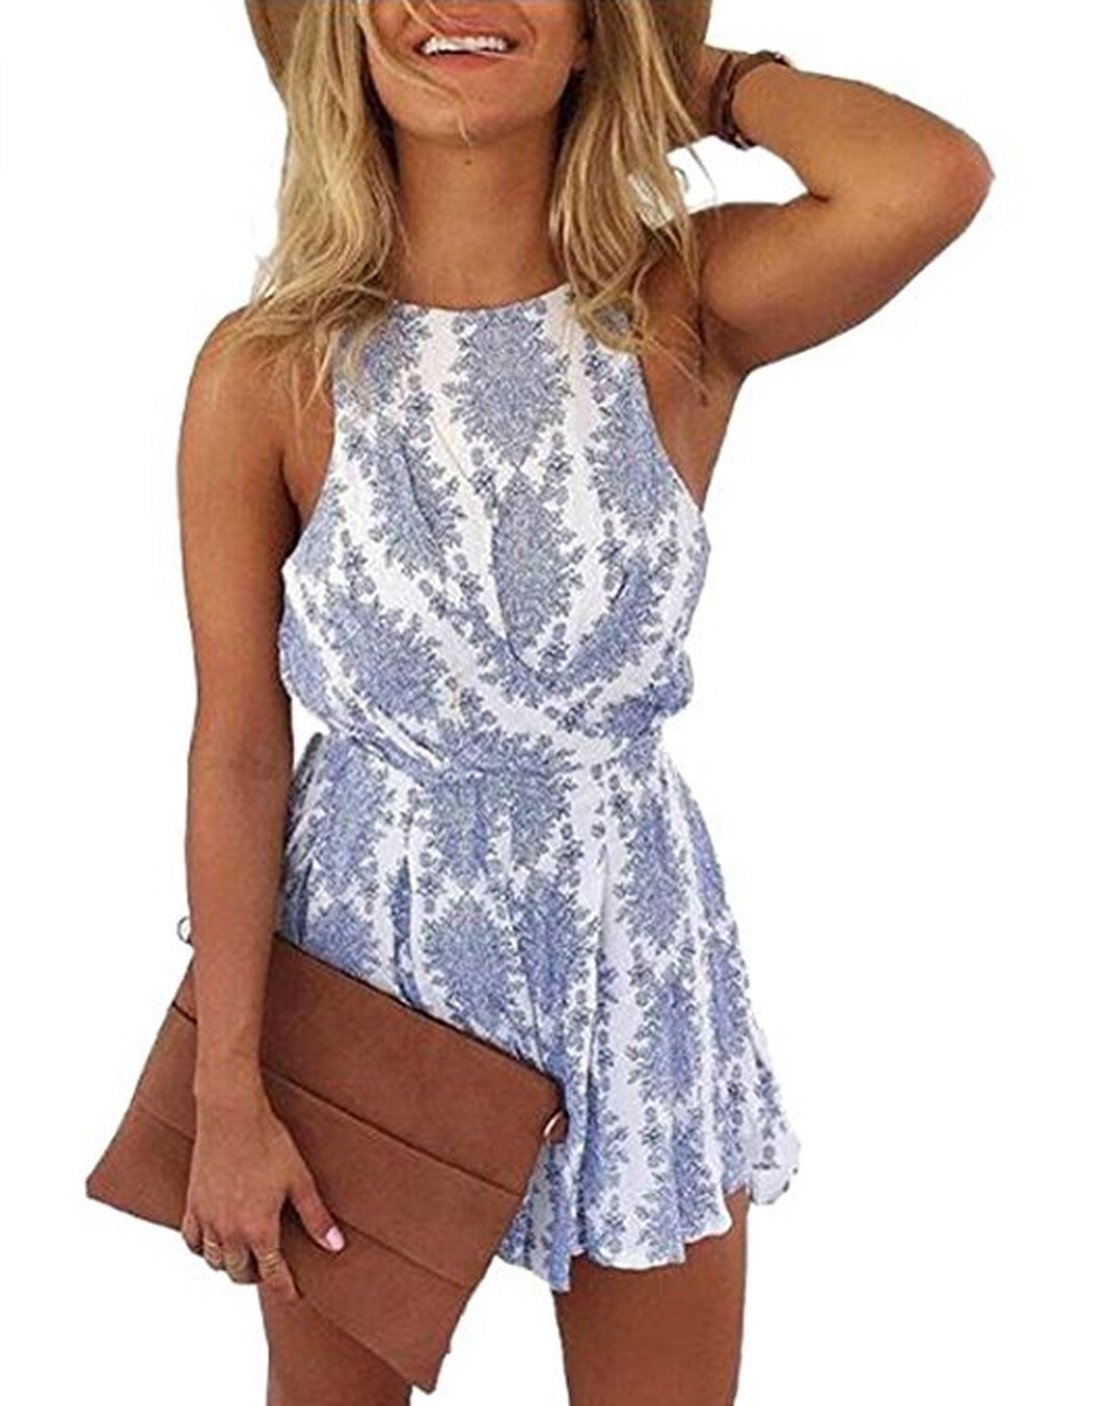 Lanzom Women Sexy Strap Backless Summer Beach Party Romper Jumpsuit (Small, Blue)